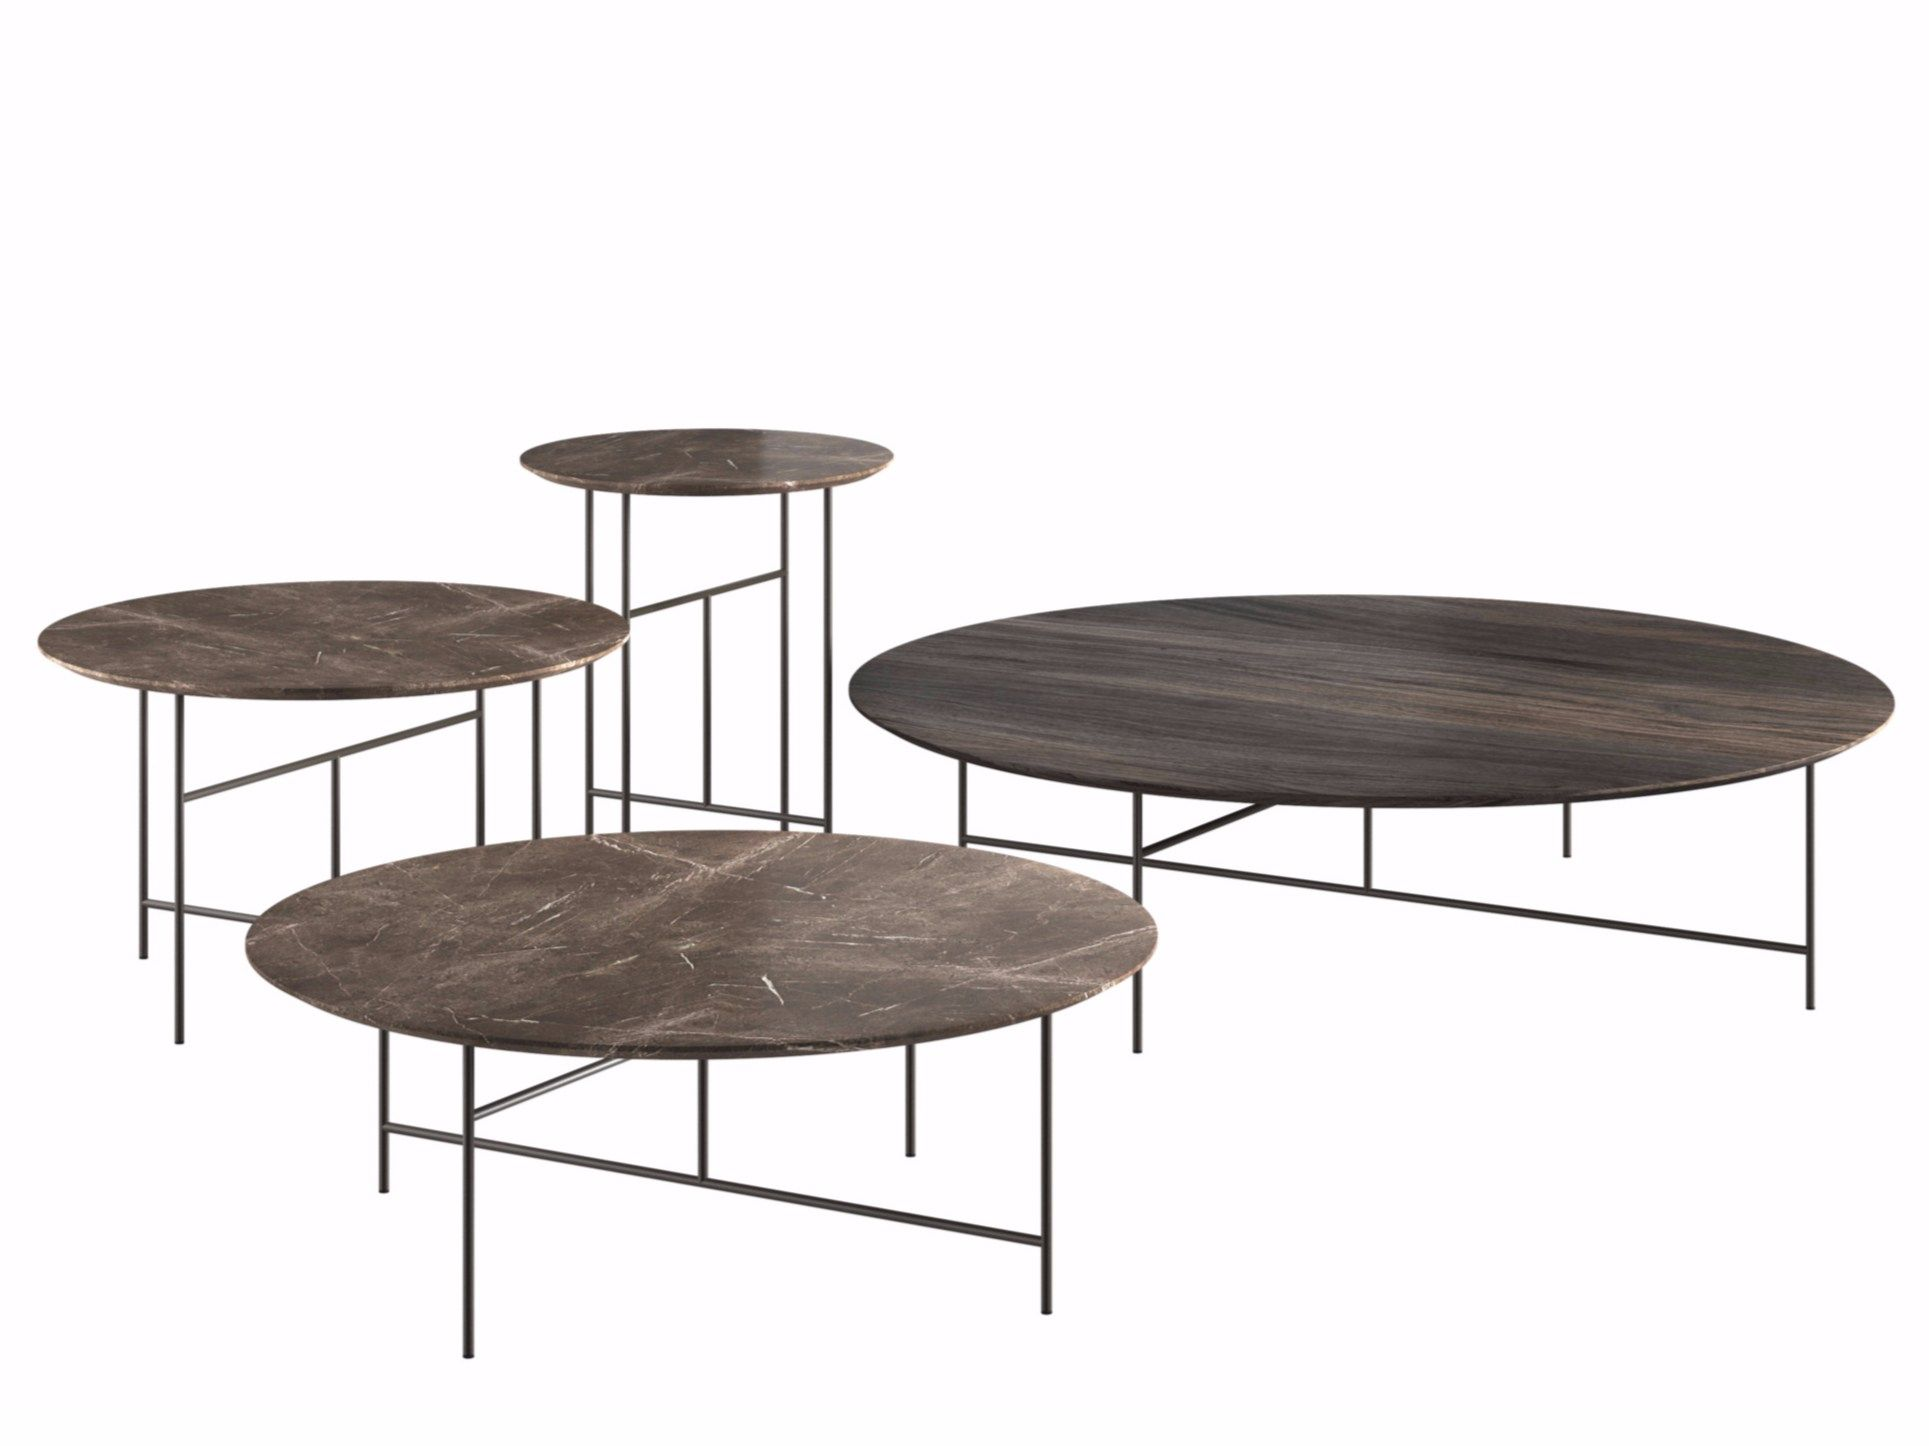 Contemporary style round coffee table SEN by DE PADOVA design